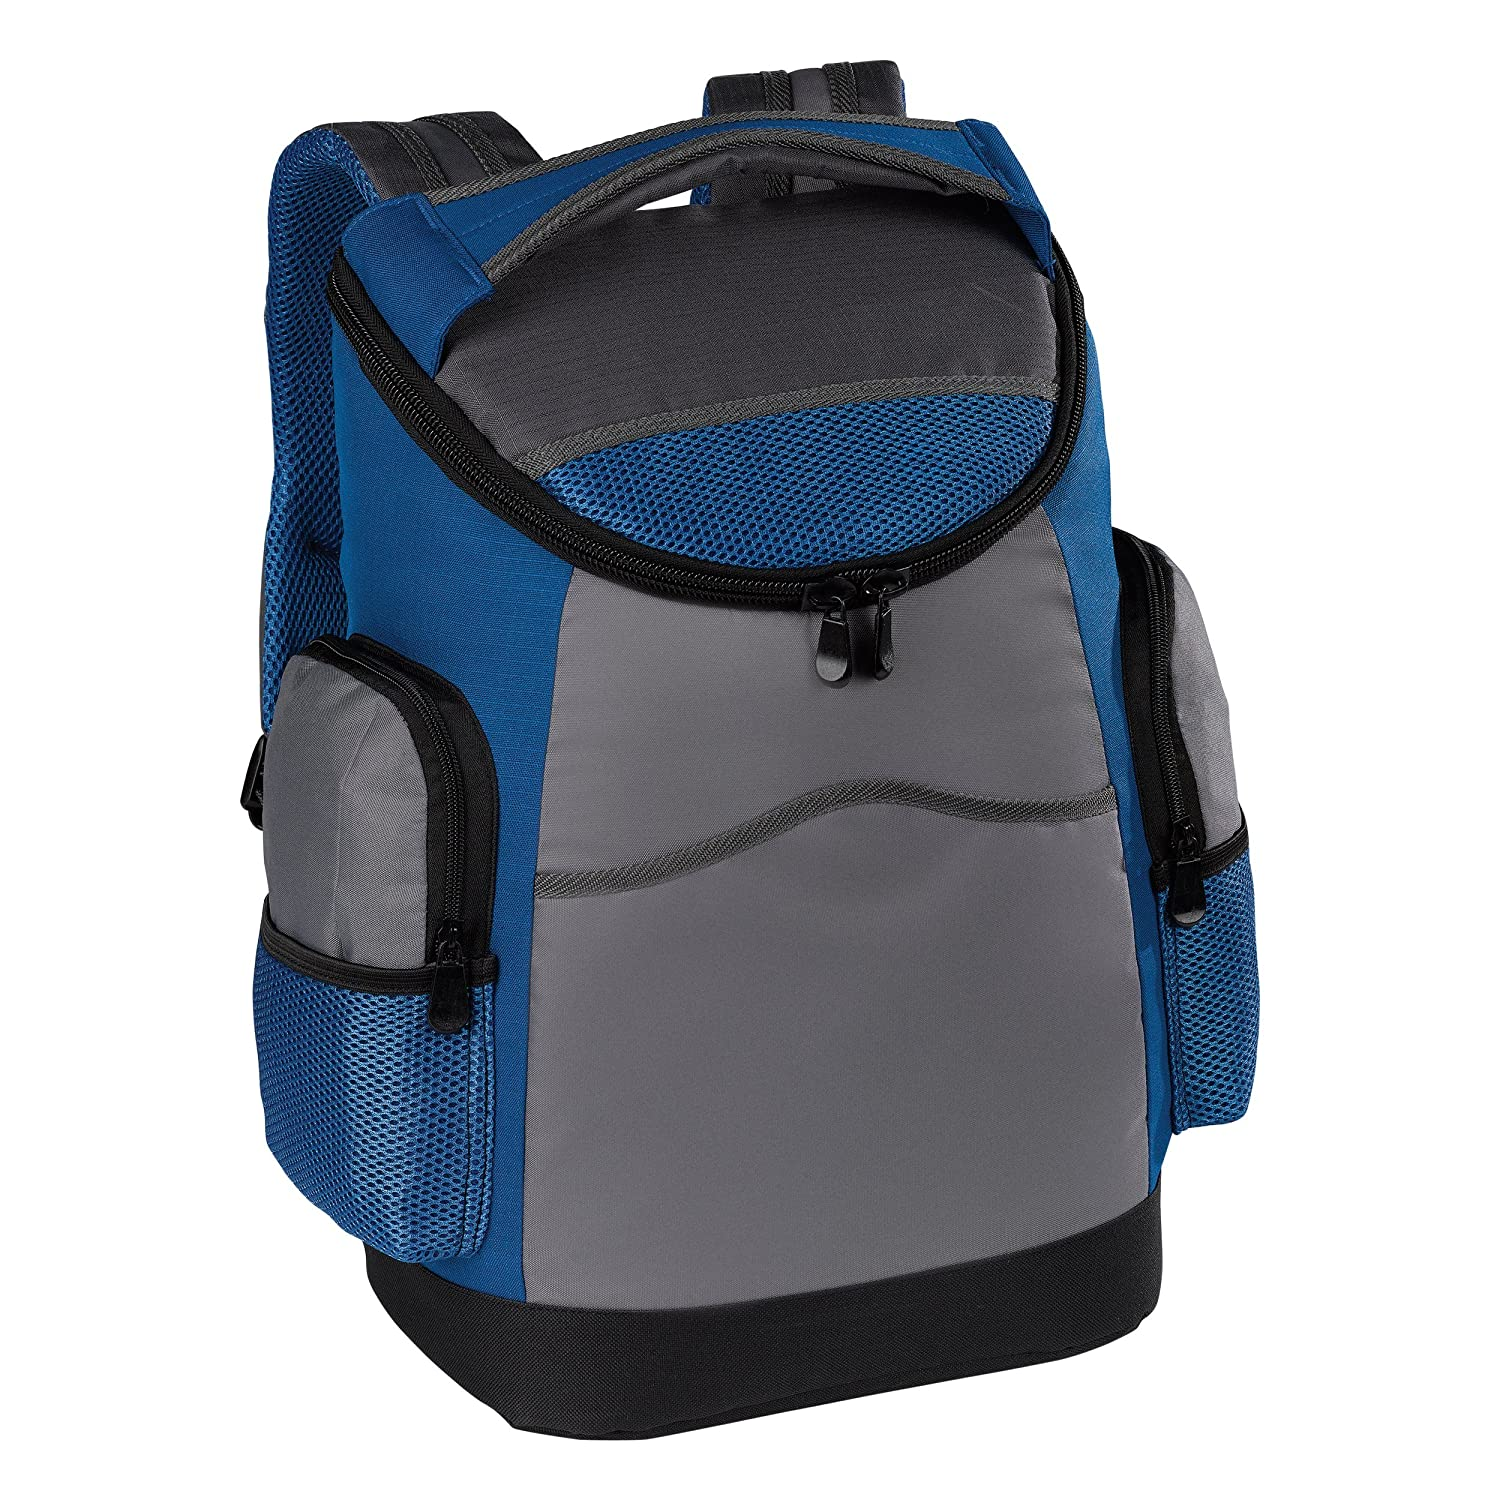 OAGear Ultimate Backpack Cooler – Royal